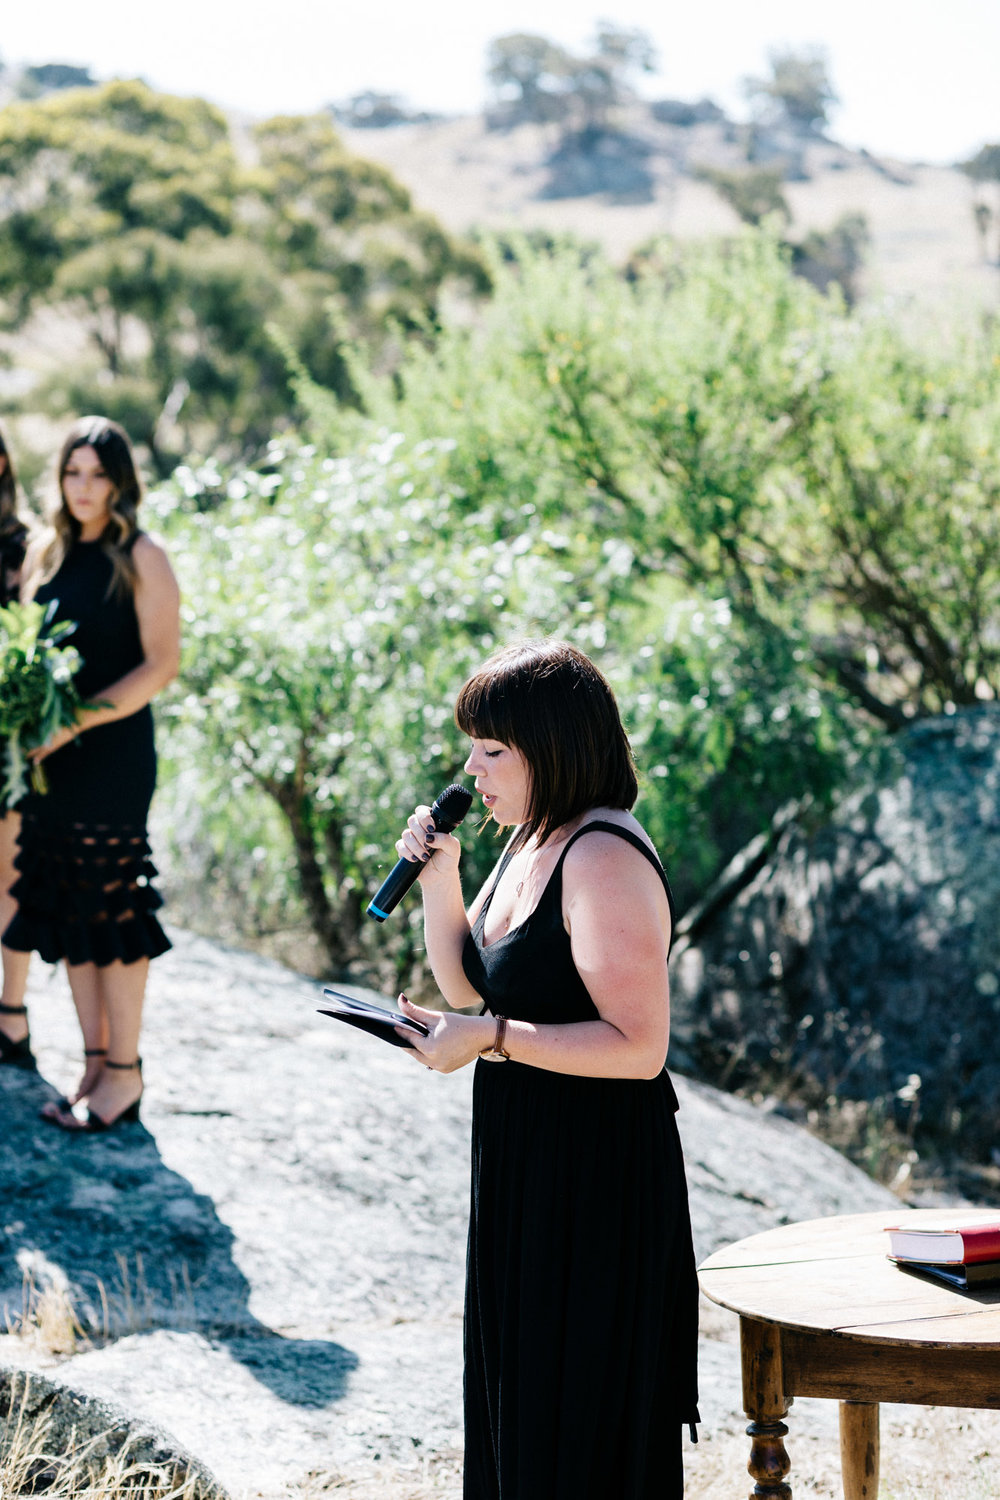 Megan Thompson, Macedon Ranges celebrant. Photo by Marnie Hawson Weddings